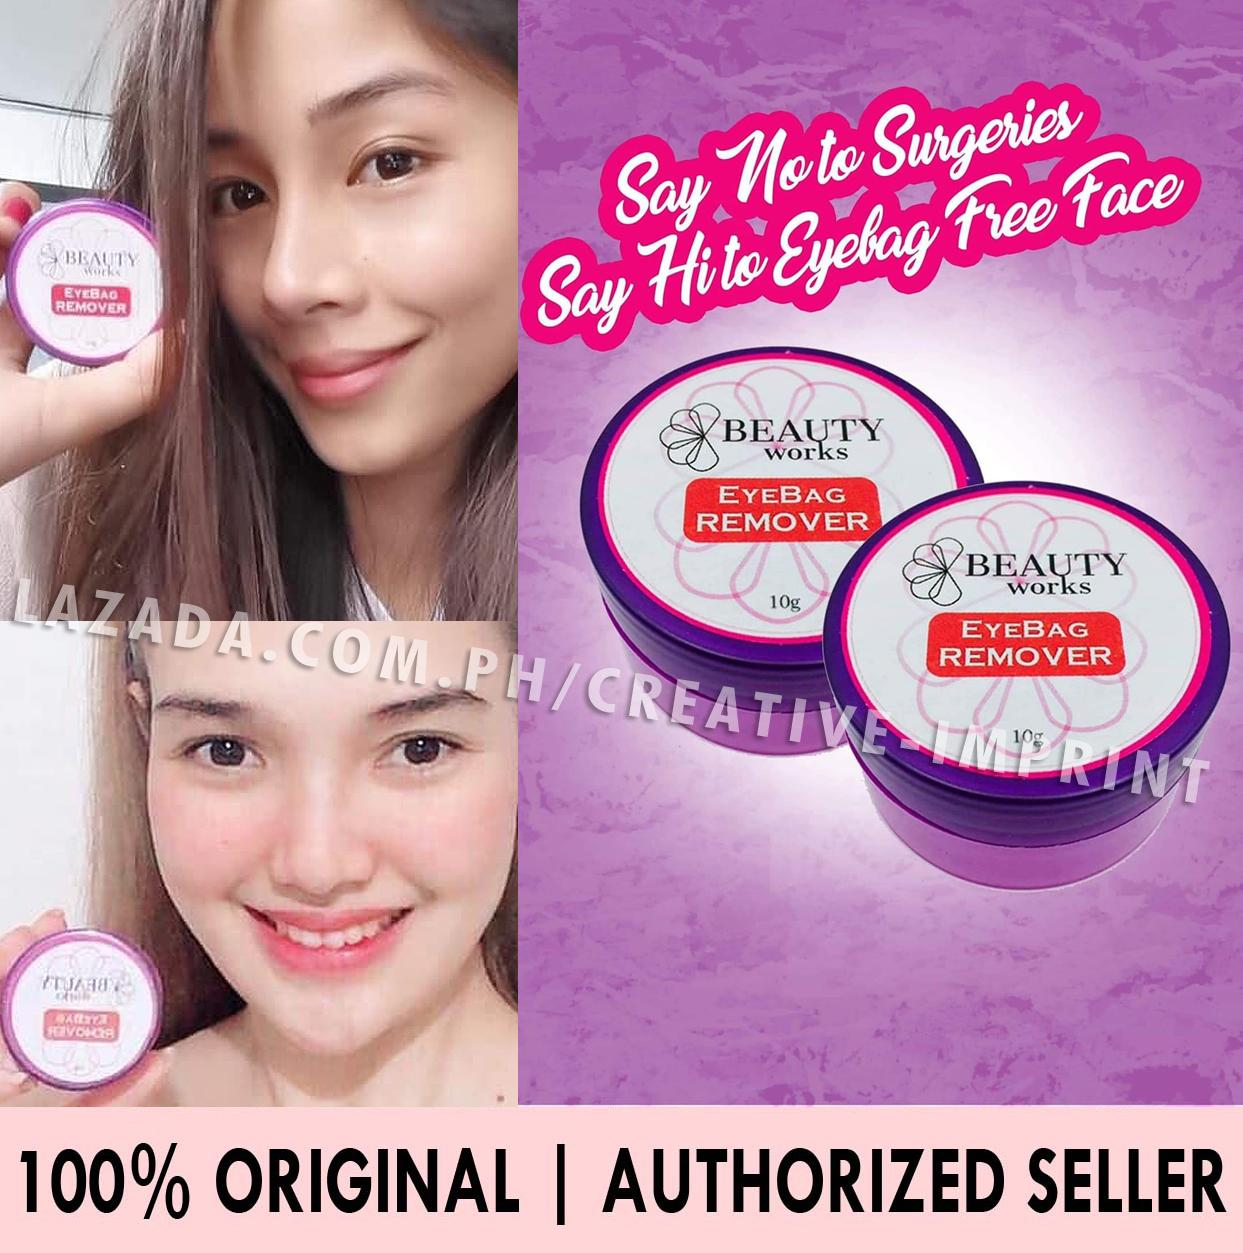 Authentic Beauty Works Eye Bags Remover Cream Eyebag 10g By Creative Imprint.